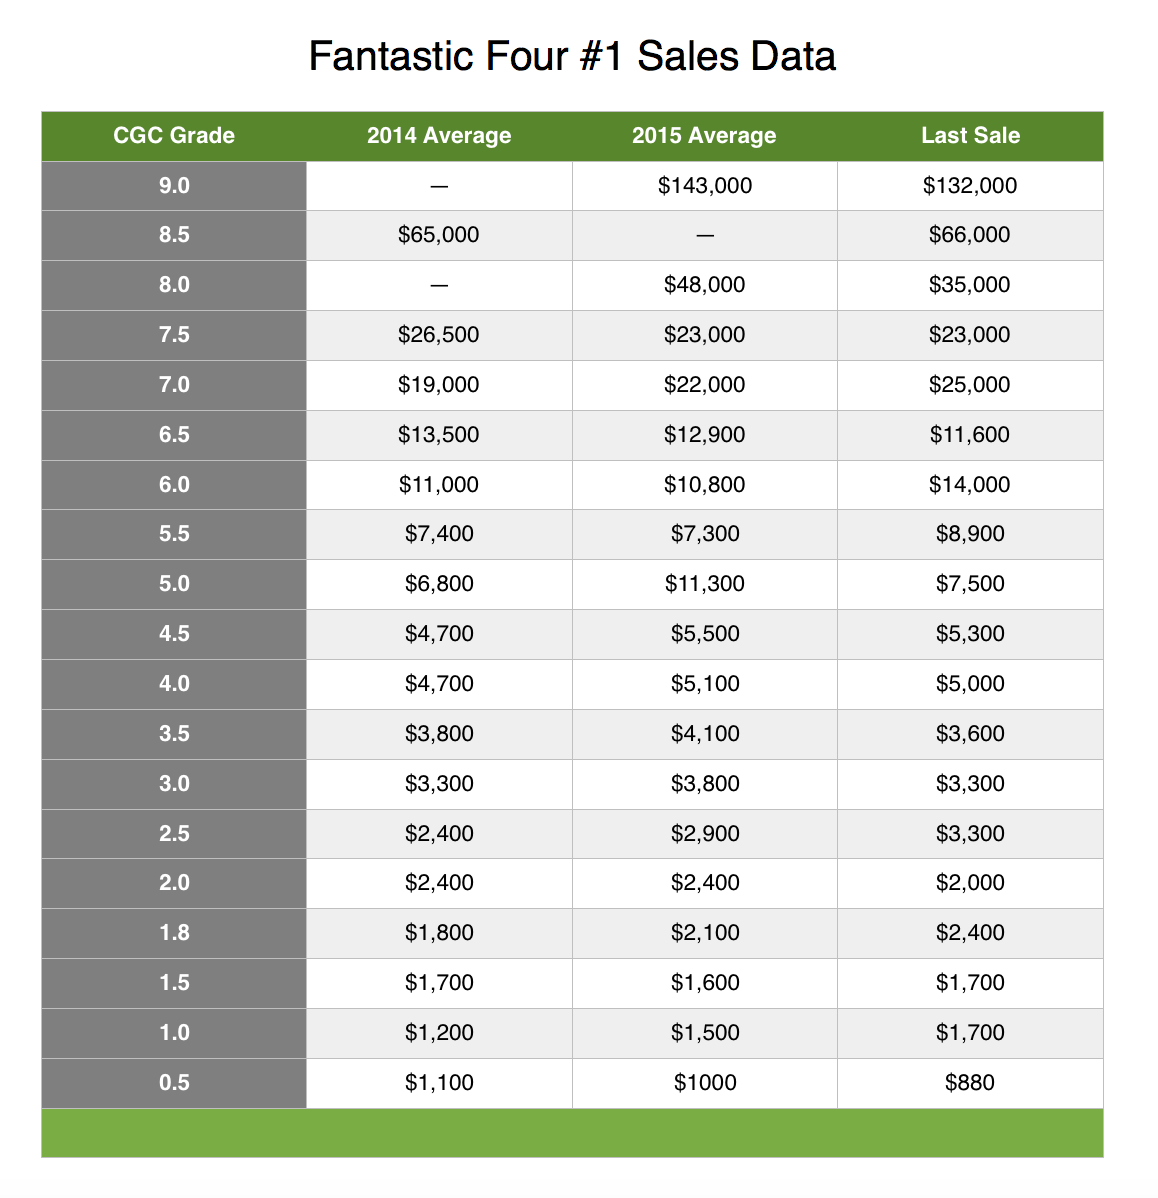 Fantastic Four #1 CGC sales data. This book has under-performed when compared to other Silver Age mega-key issues like Avengers #1, Amazing Fantasy #15 and Journey into Mystery #83